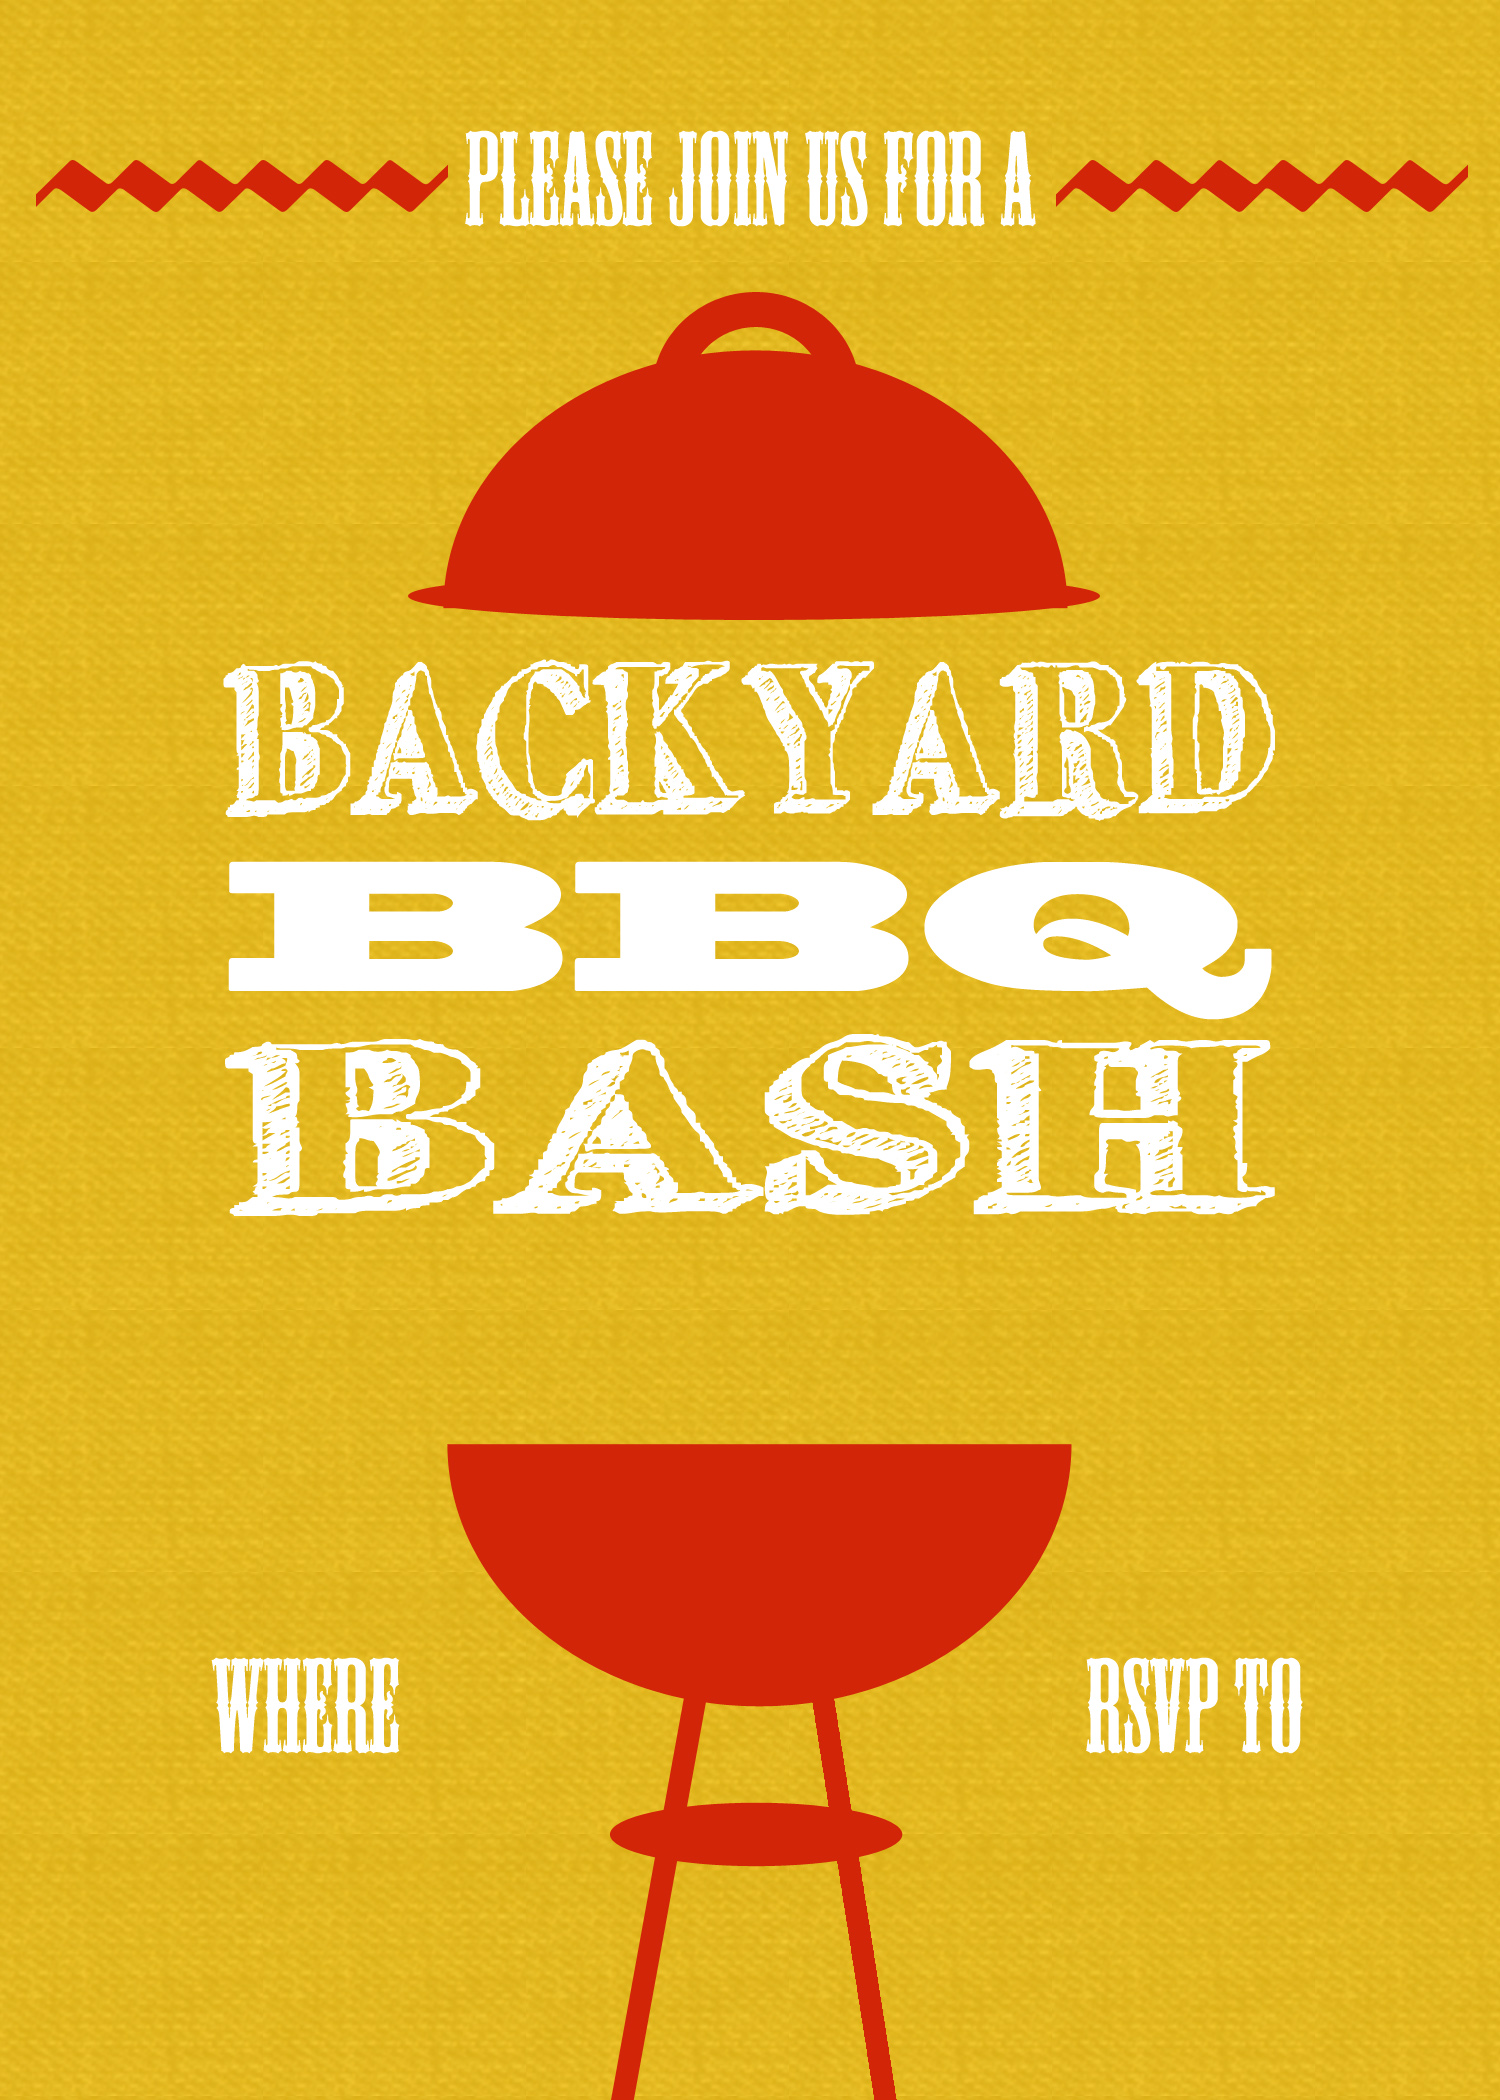 barbecue invite template com diy printable backyard bbq bash invite